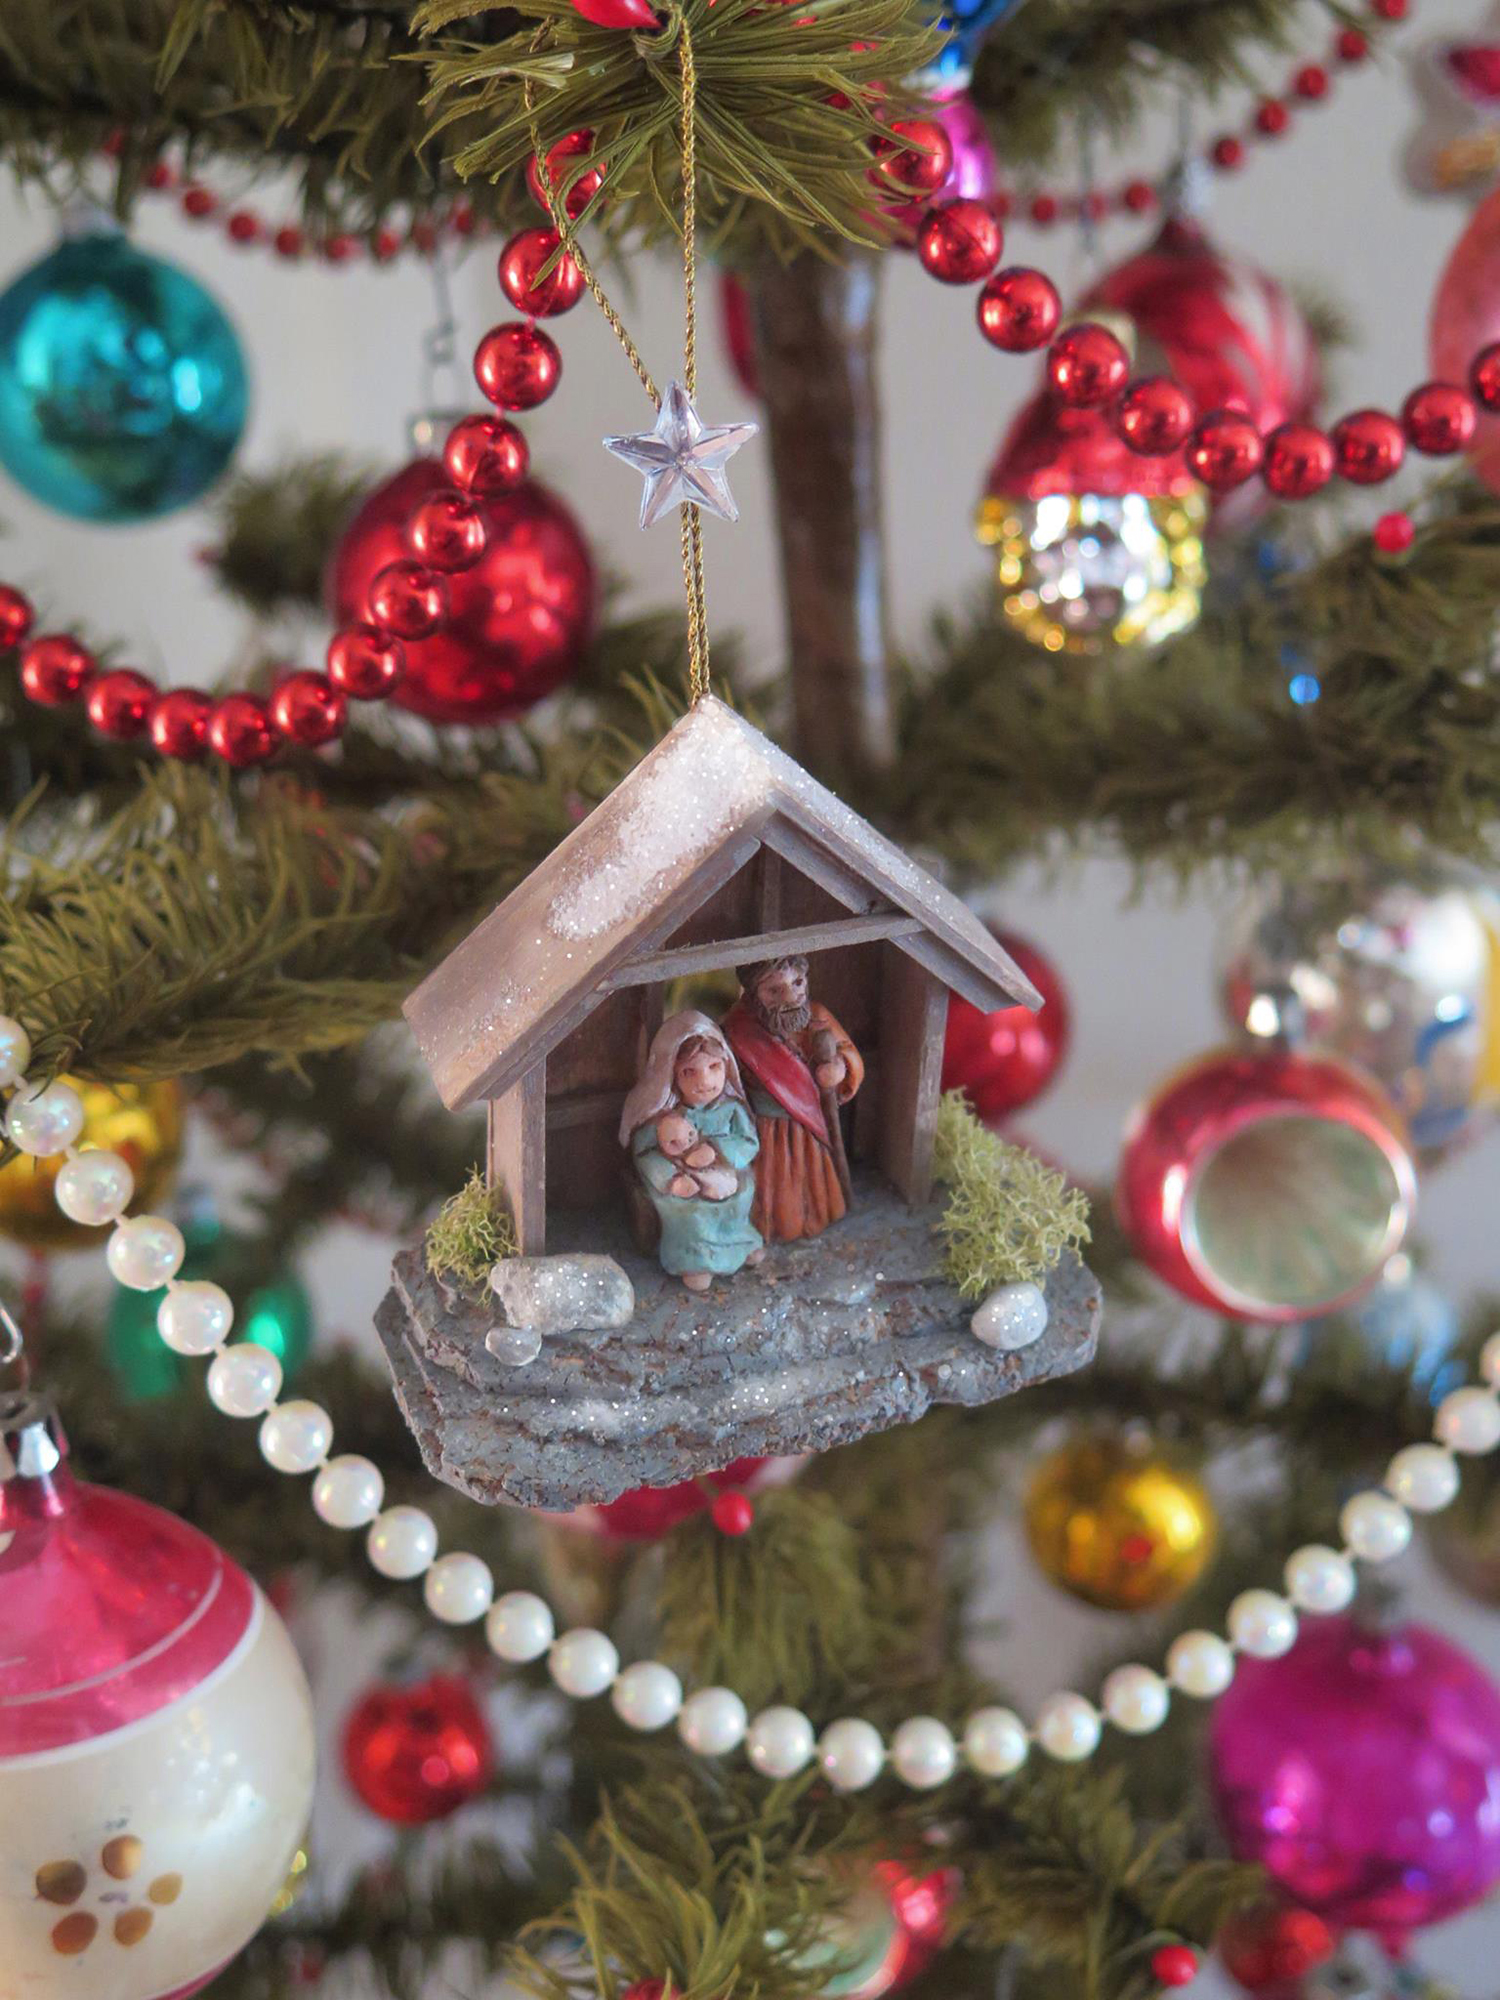 Figure 21: A example of a completed Nativity ornament, designed to be made by workshop participants, hanging on a Christmas tree. Photo by R. Michael Palan.